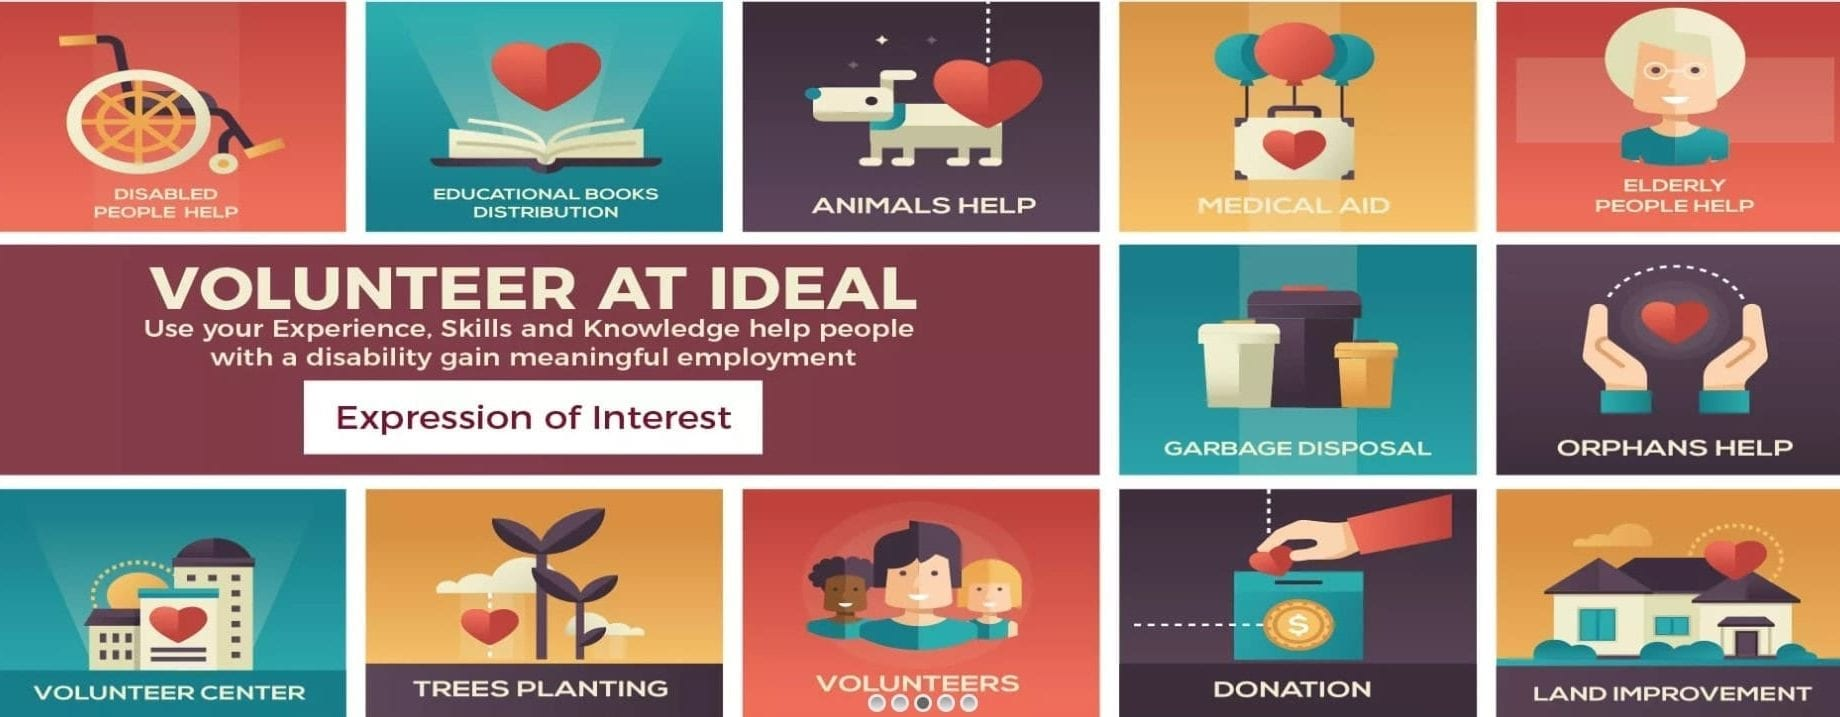 Volunteer at IDEAL Placements